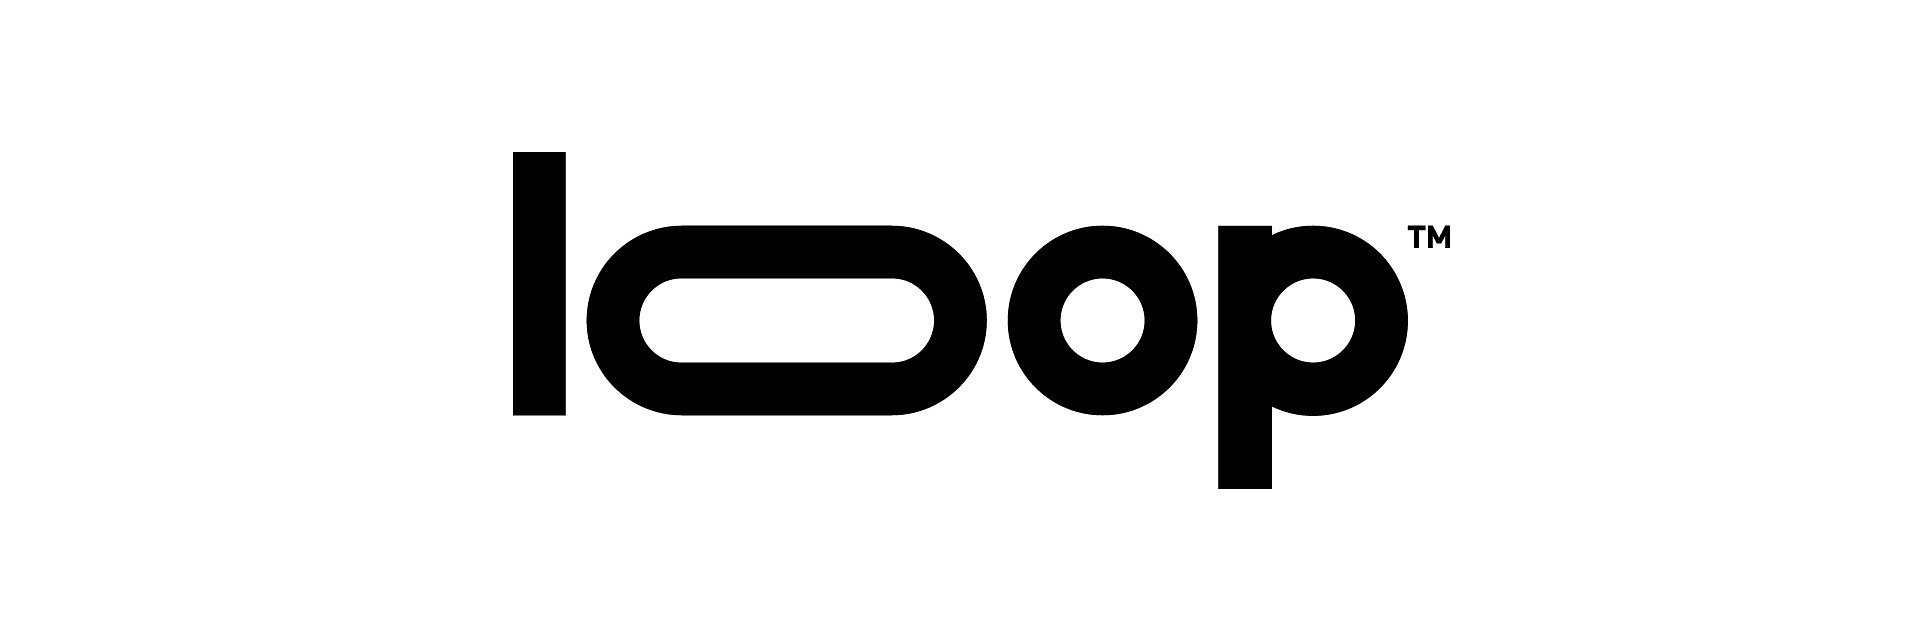 Loop Media Announces Appointment of New Board Members and Establishment of New Board Committees